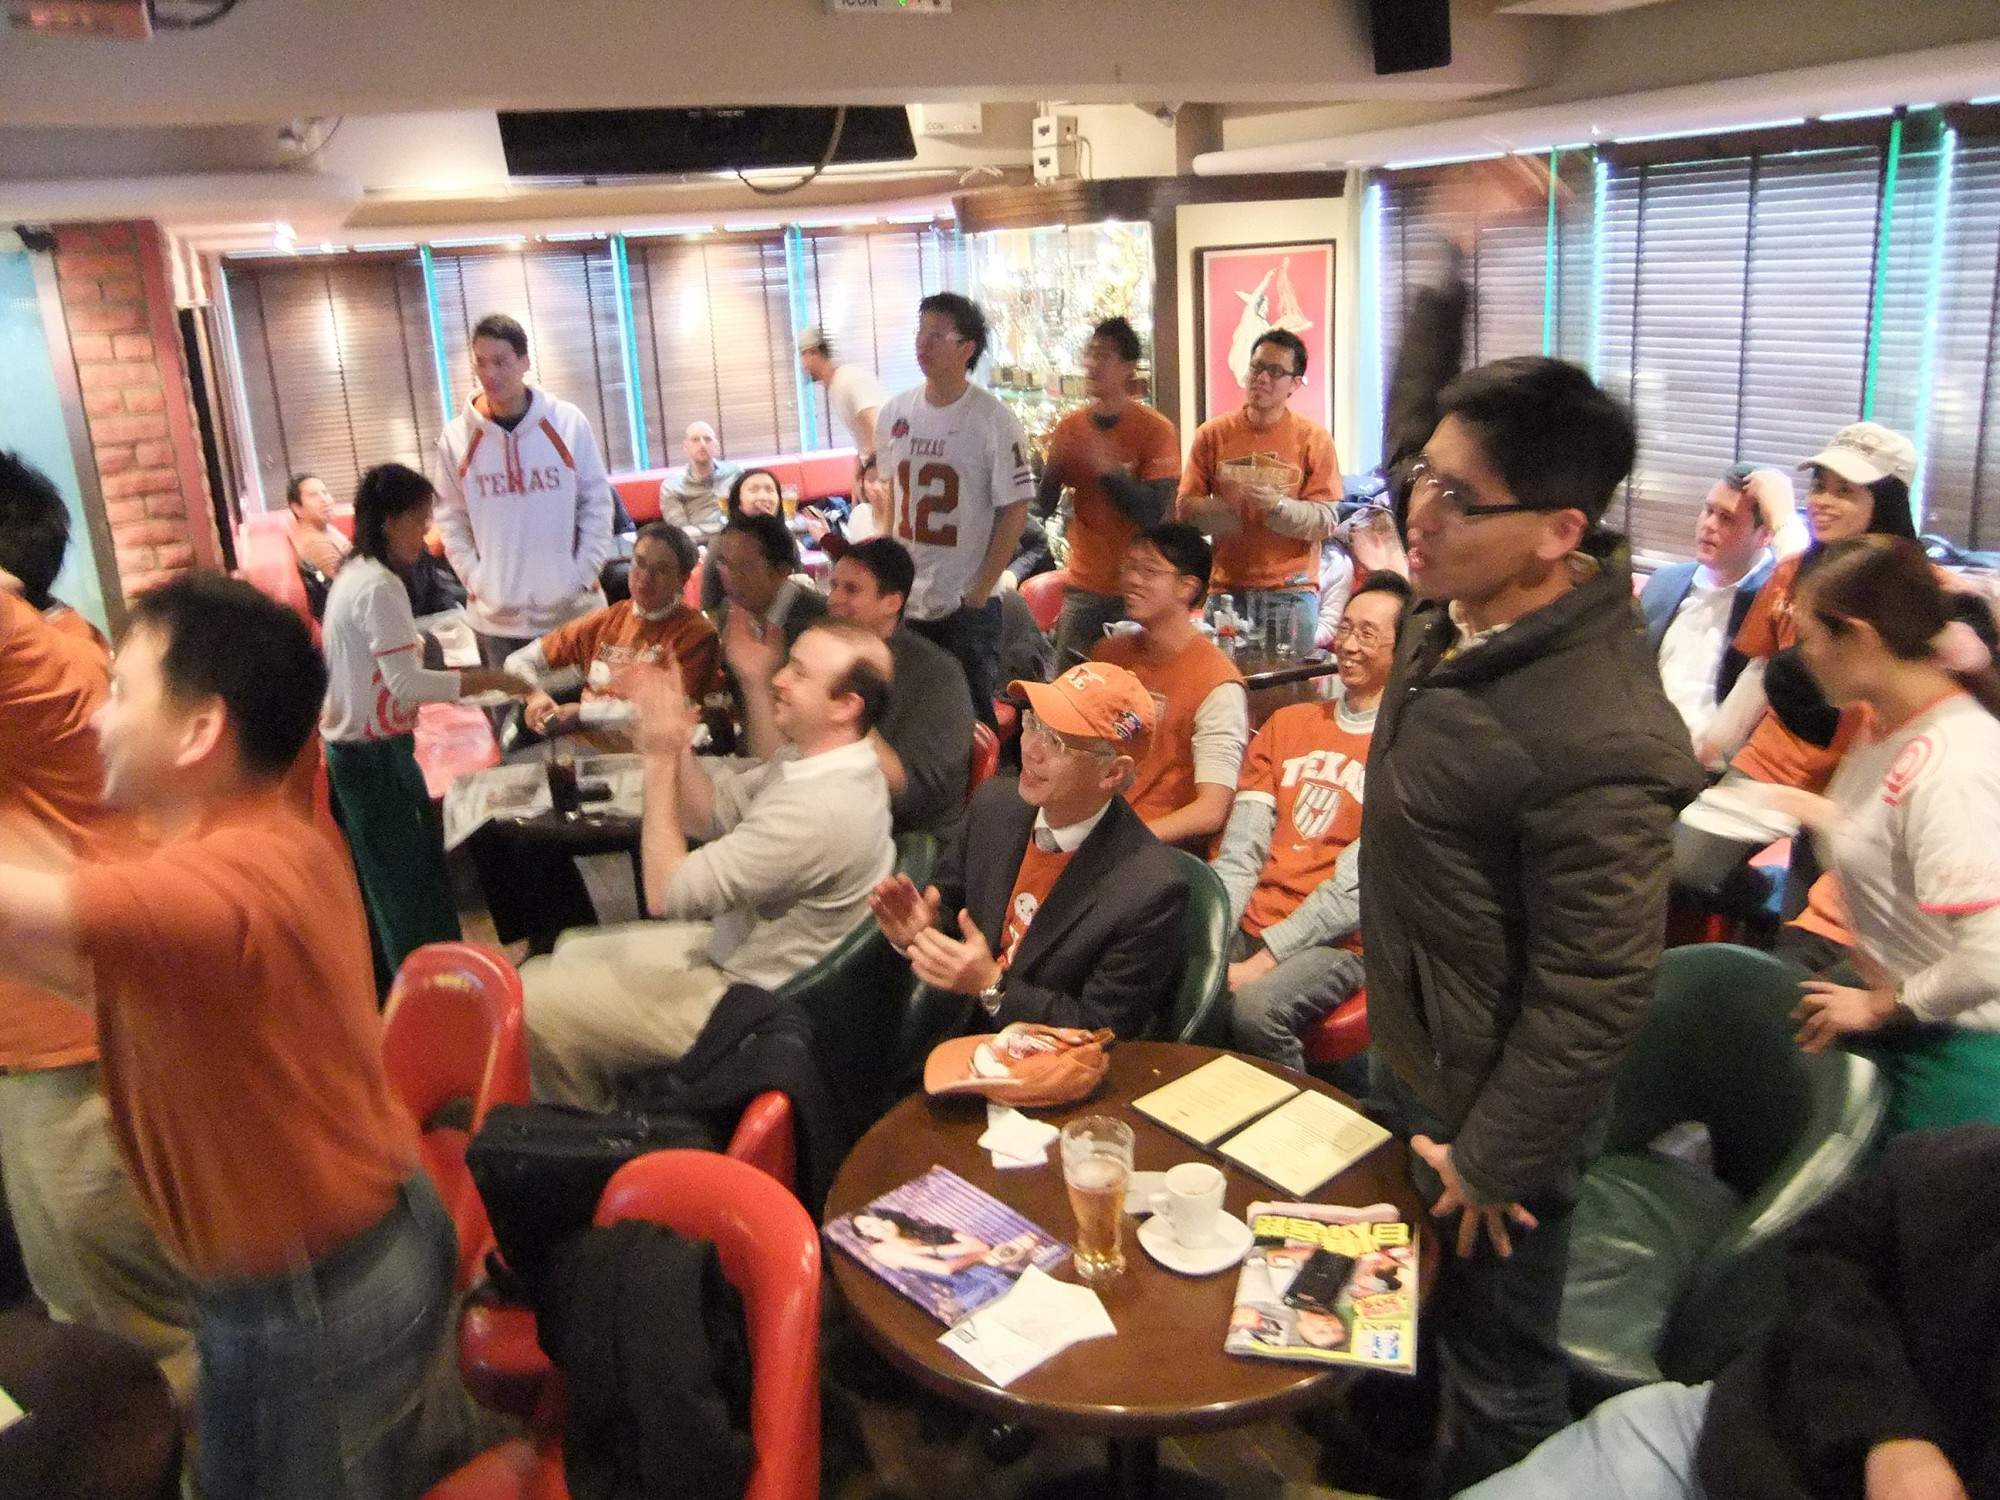 BCS National Championship Game Live Viewing Party